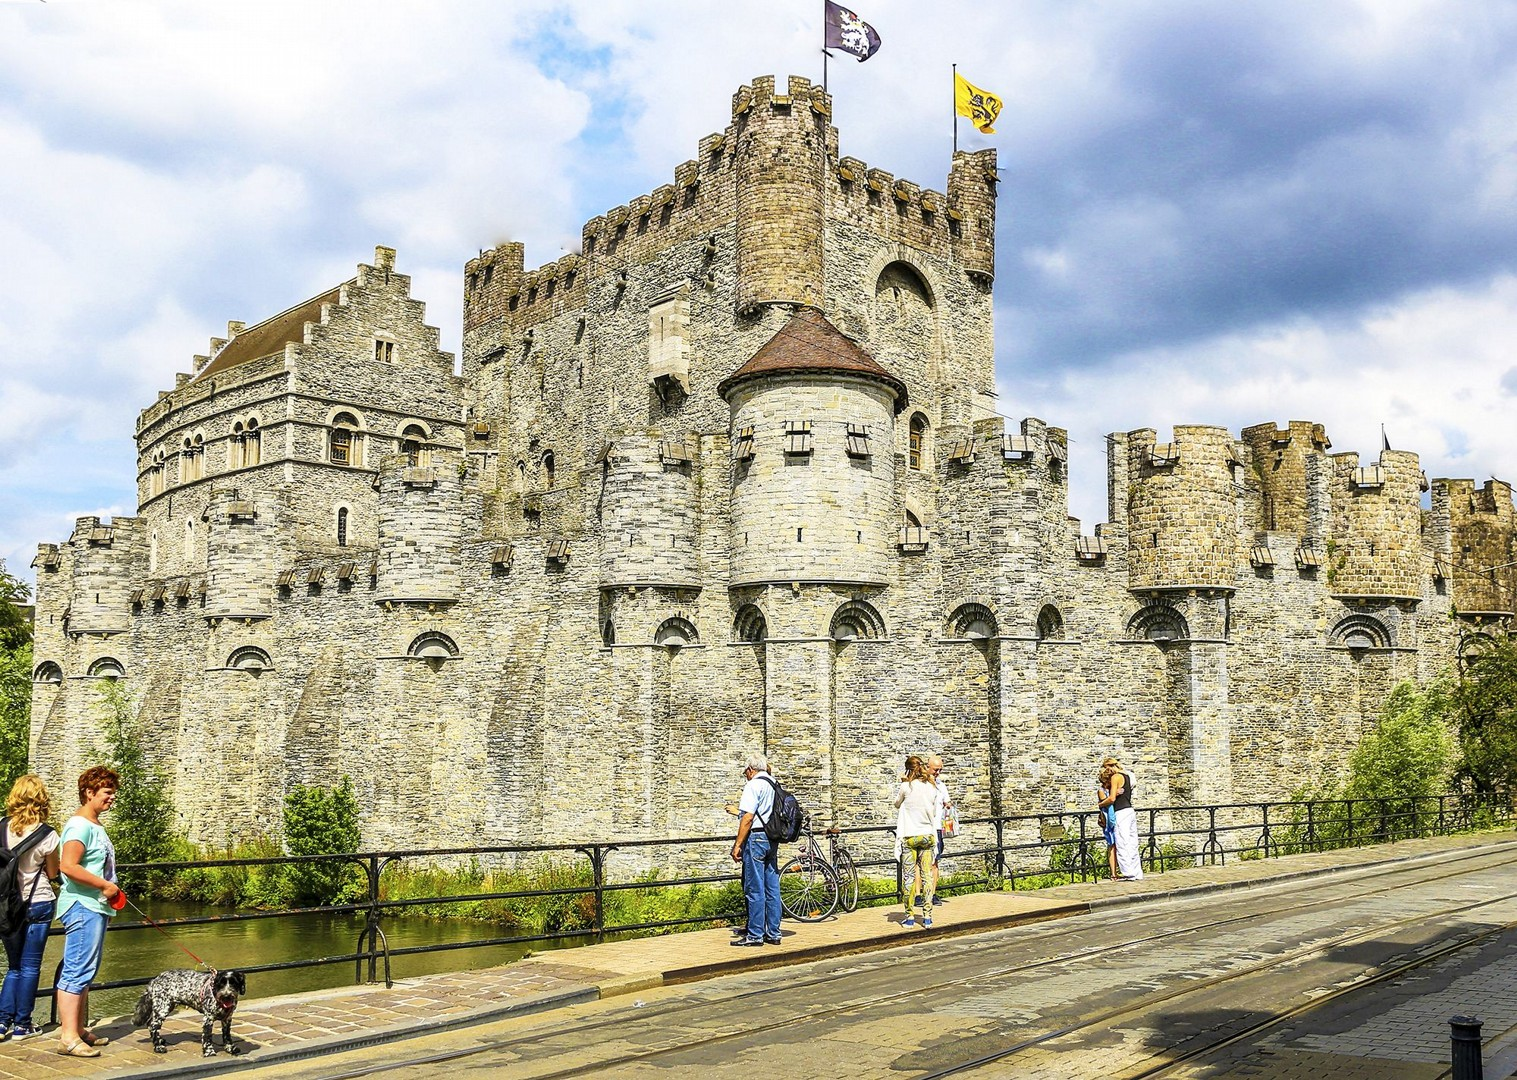 gravensteen-castle-ghent-belgium-historical-sites-bruges-to-amsterdam-tour-on-bikes.jpg - Holland and Belgium - Bruges to Amsterdam - Premium Bike and Barge Holiday - Leisure Cycling